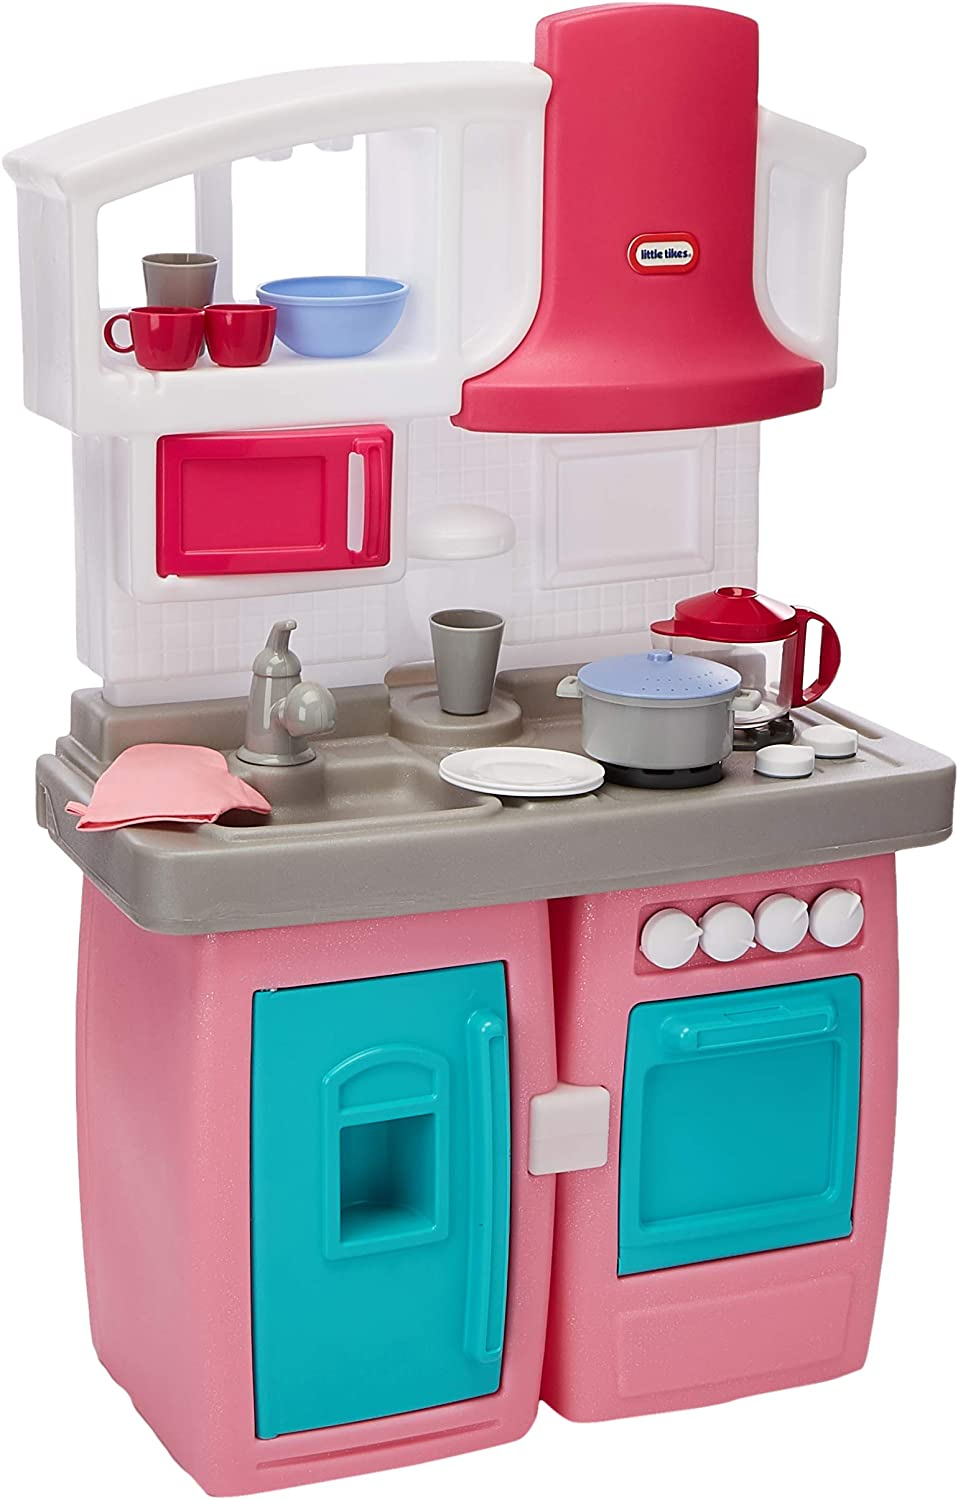 Top 10 Best Kitchen Set For Toddlers in 2020 6